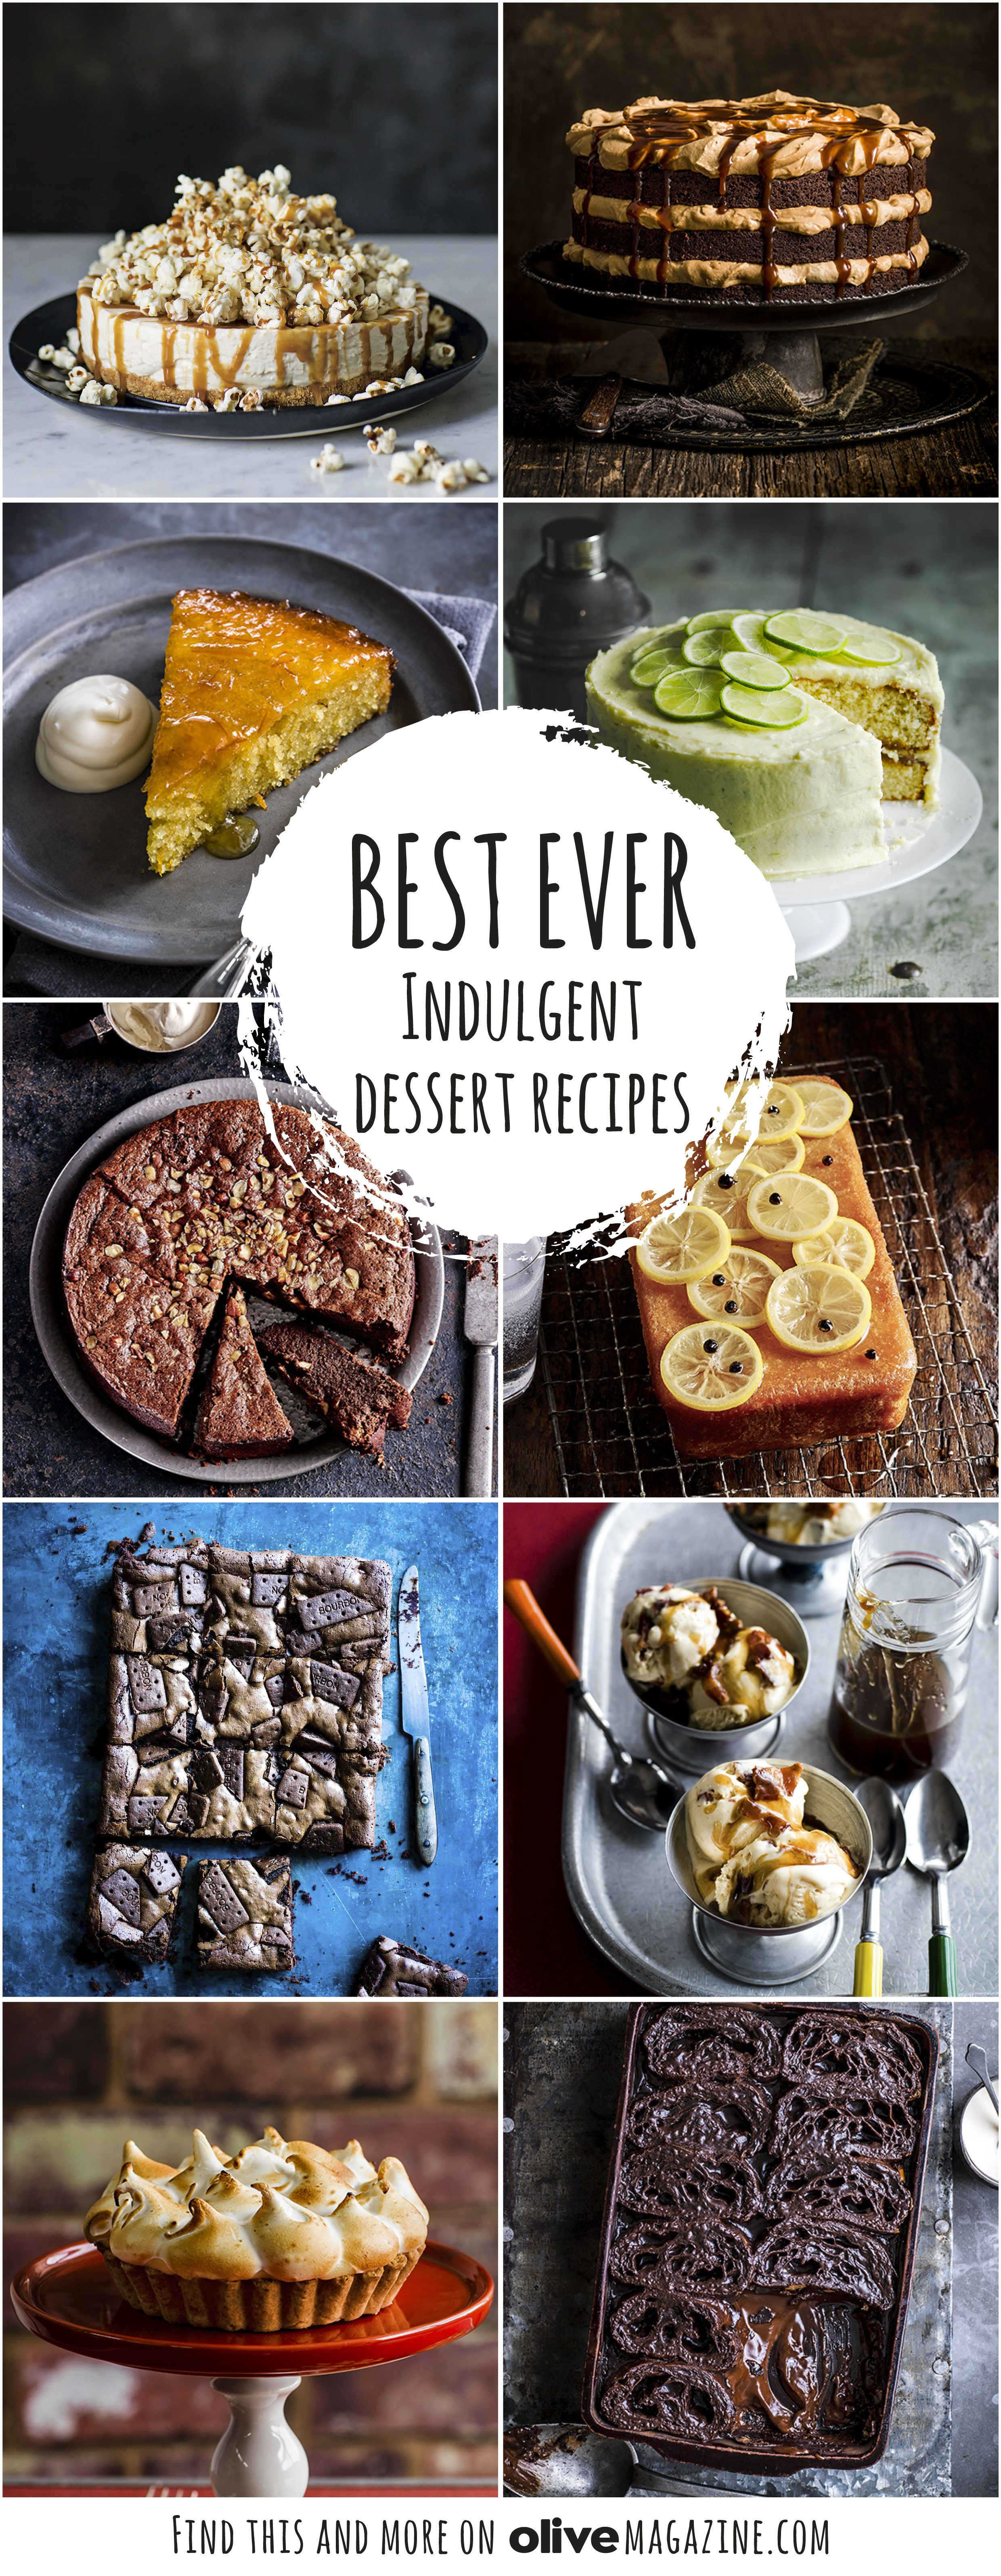 If you're on a diet, look away now! Our best ever indulgent sweet recipes include seriously comforting puddings and baking ideas with chocolate, caramel and more...